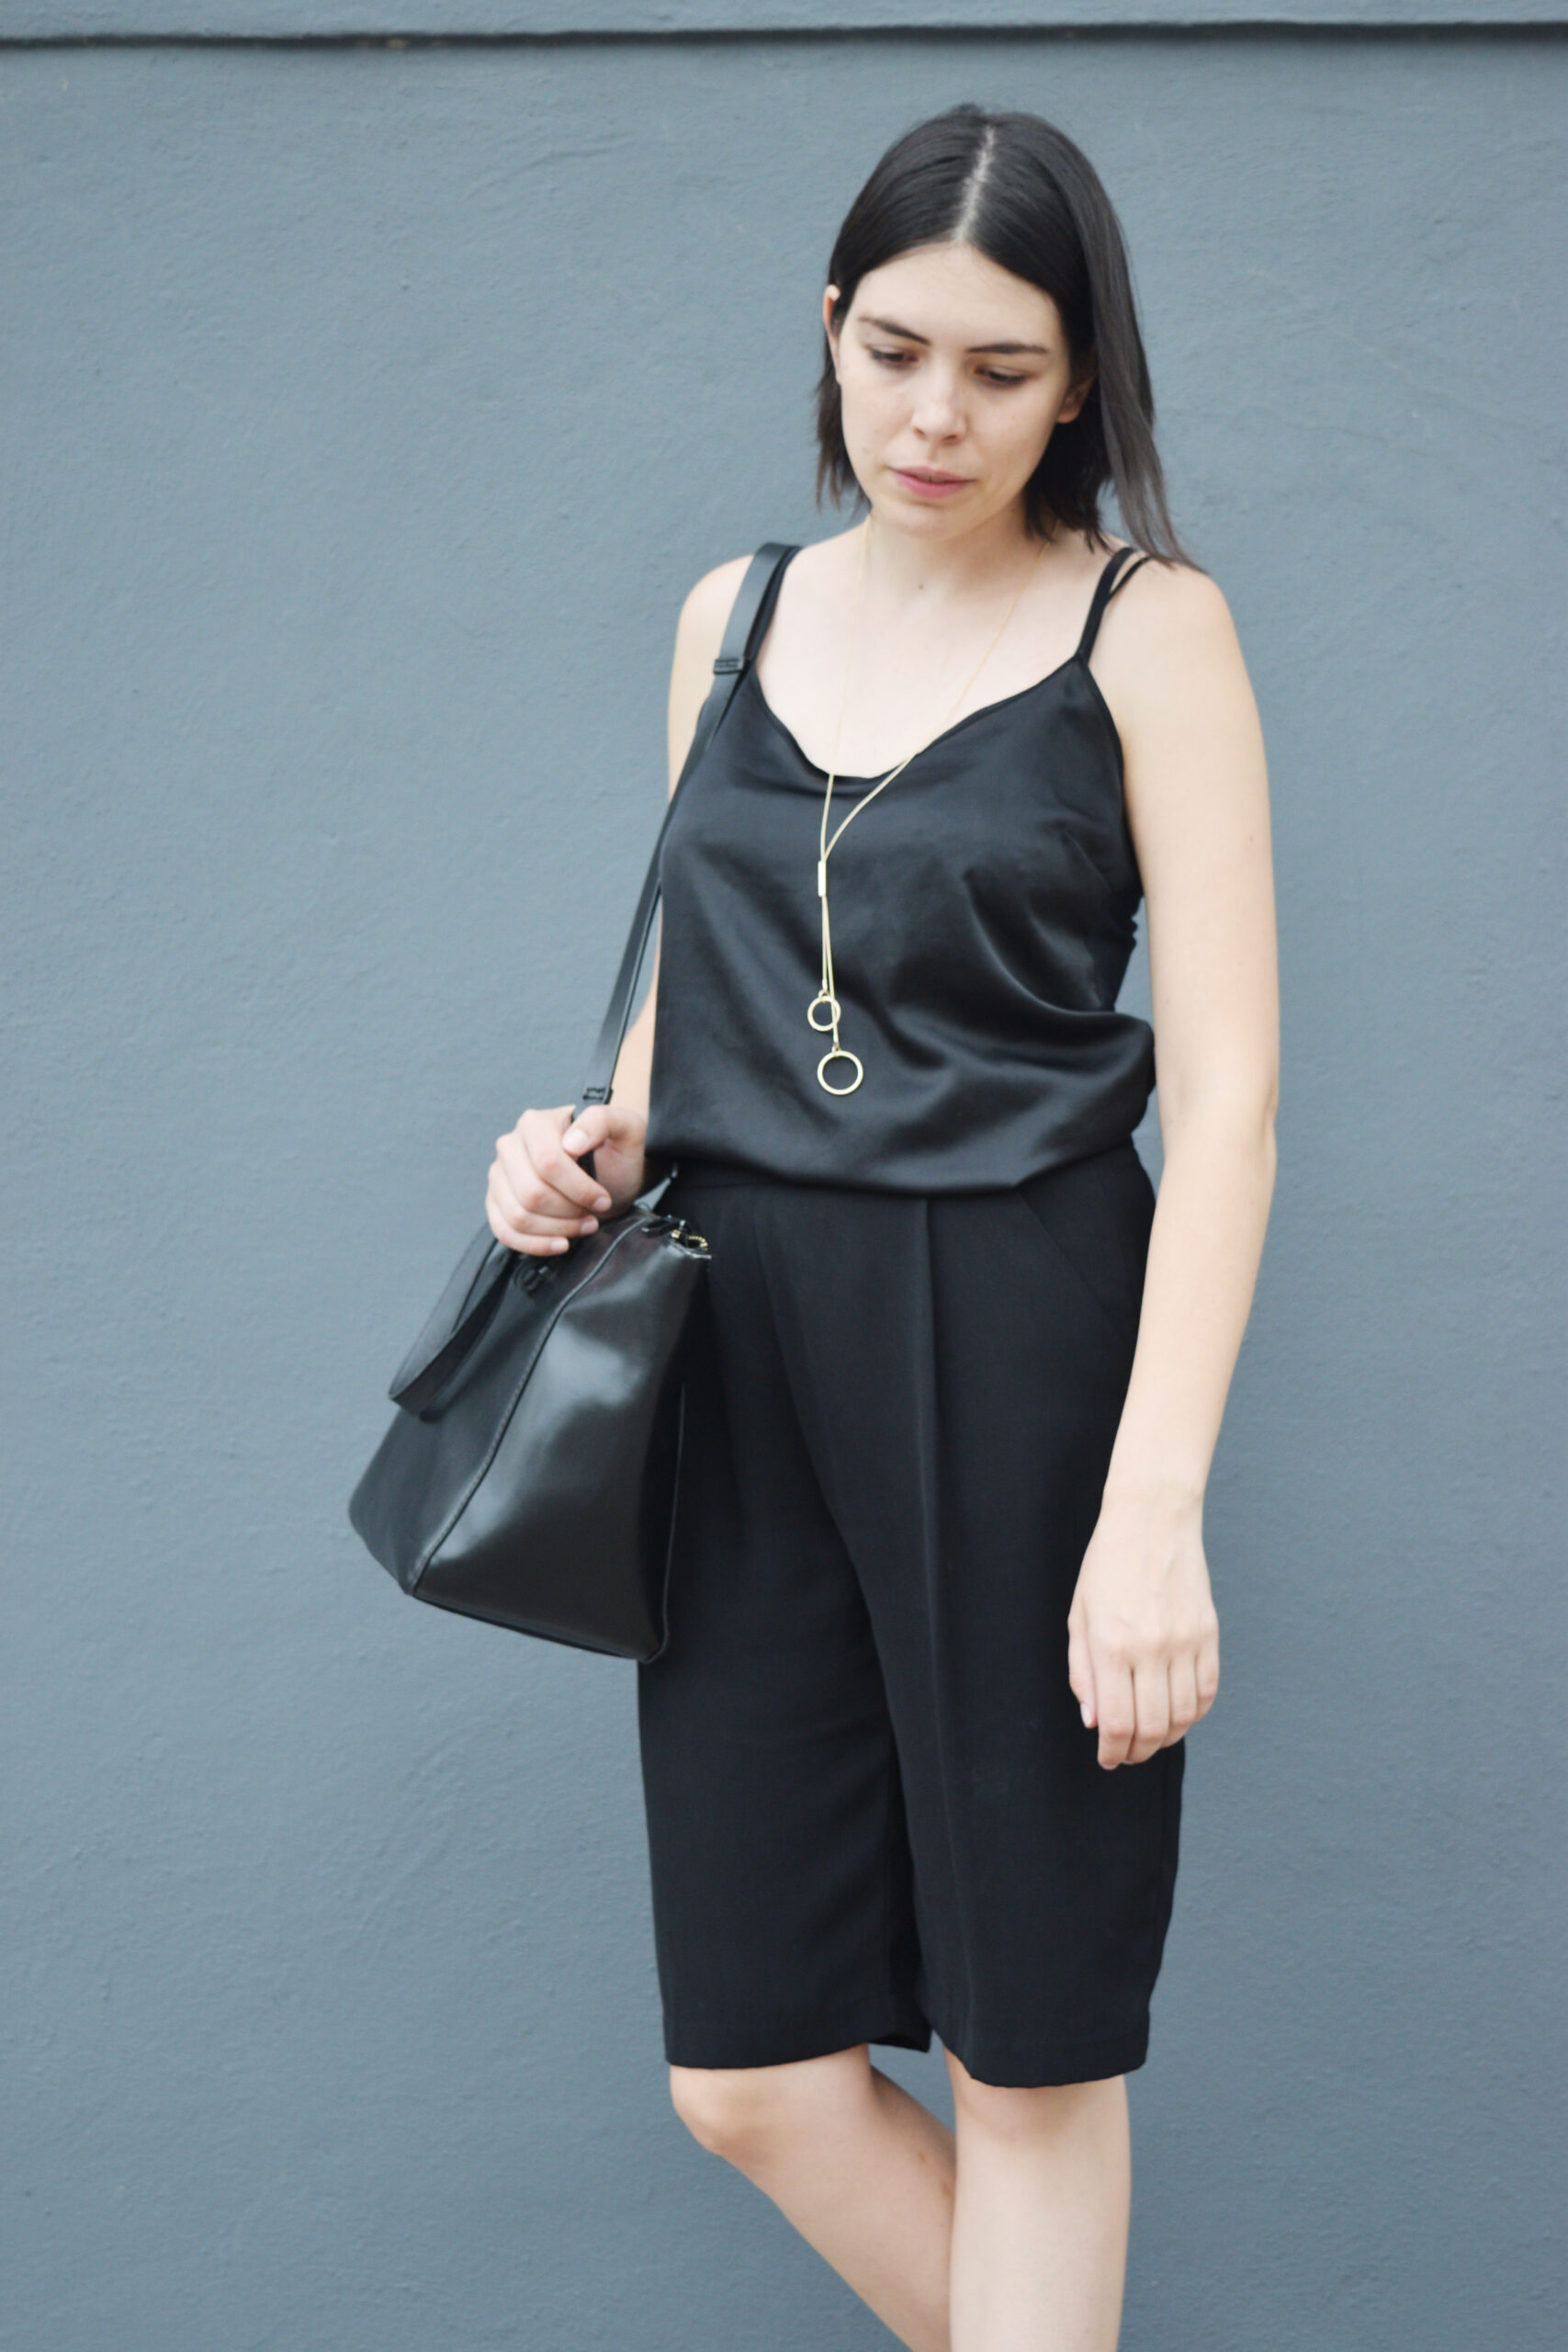 total black outfit, slip top, zara, minimal jewelry, structured bag, shorts, black, tassel heels, heels, outfit, inspo, inspiration, ideas, daniela soriano